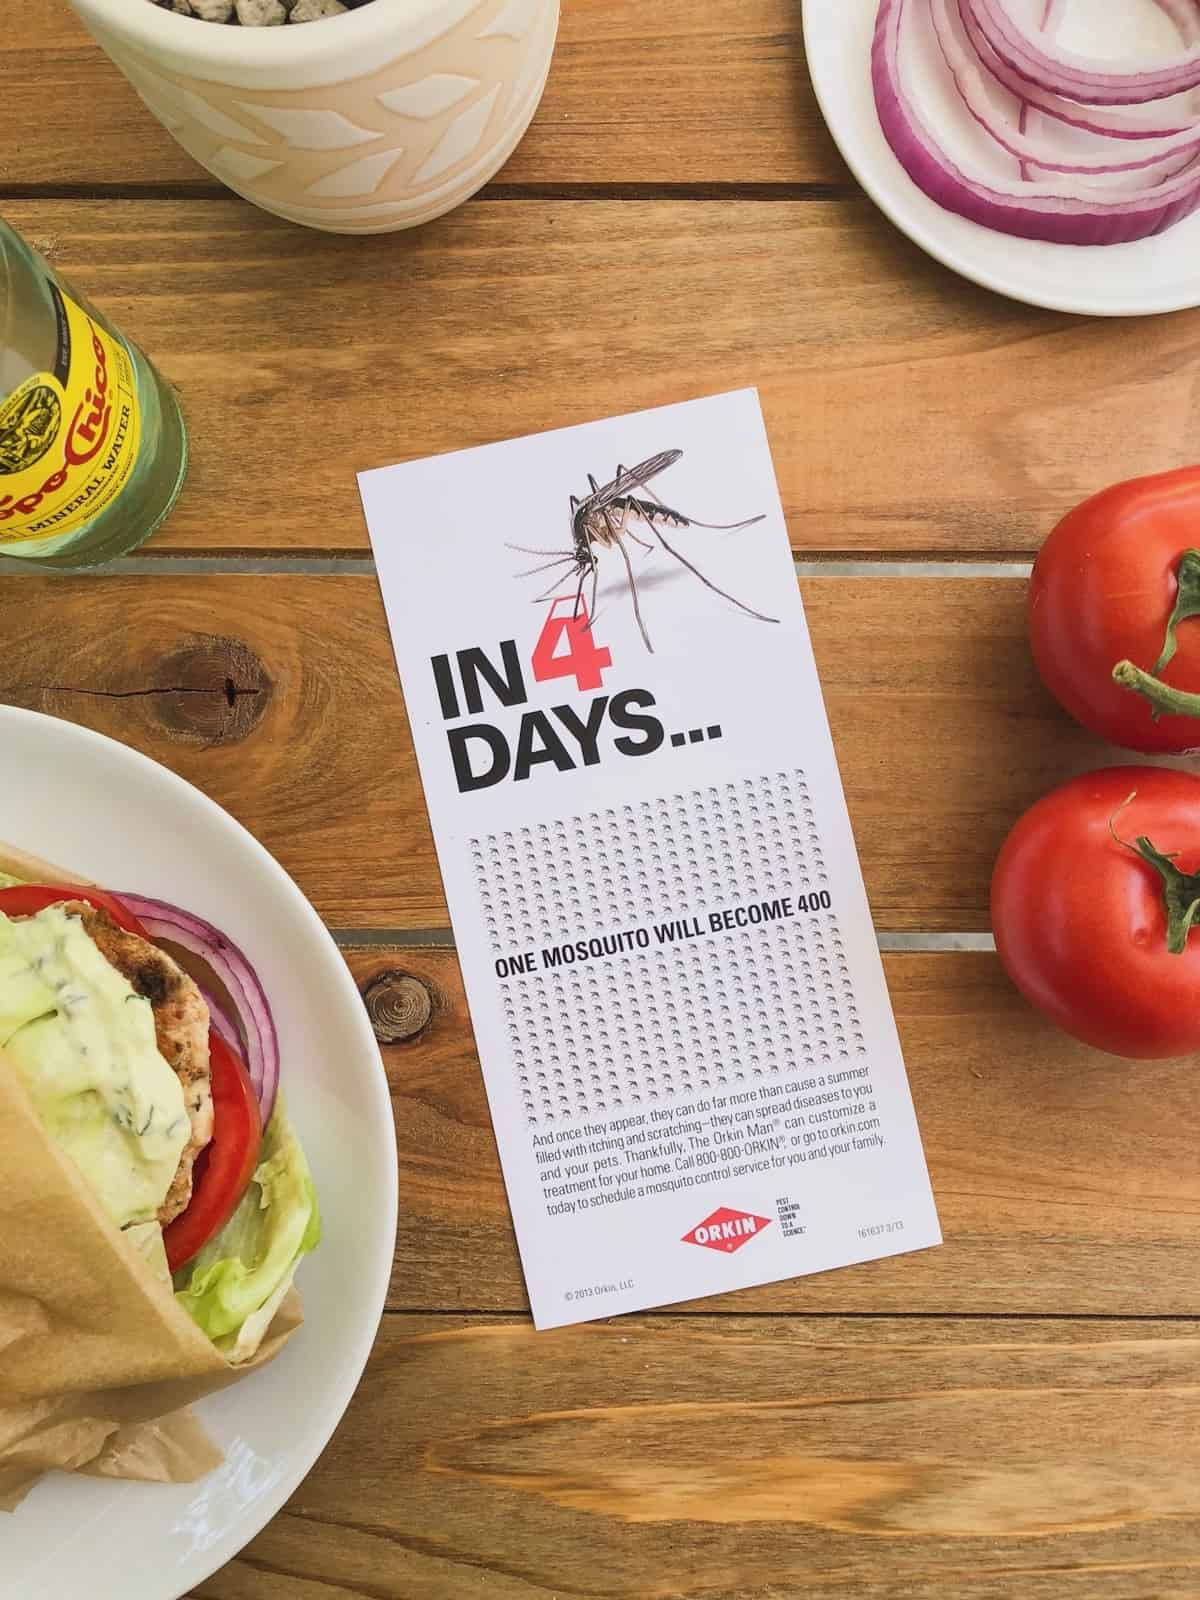 Brochure on a table talking about mosquito treatment surrounded by a Sun Dried Tomato Chicken Burger, tomatoes, cut up red onions, and a topo chico